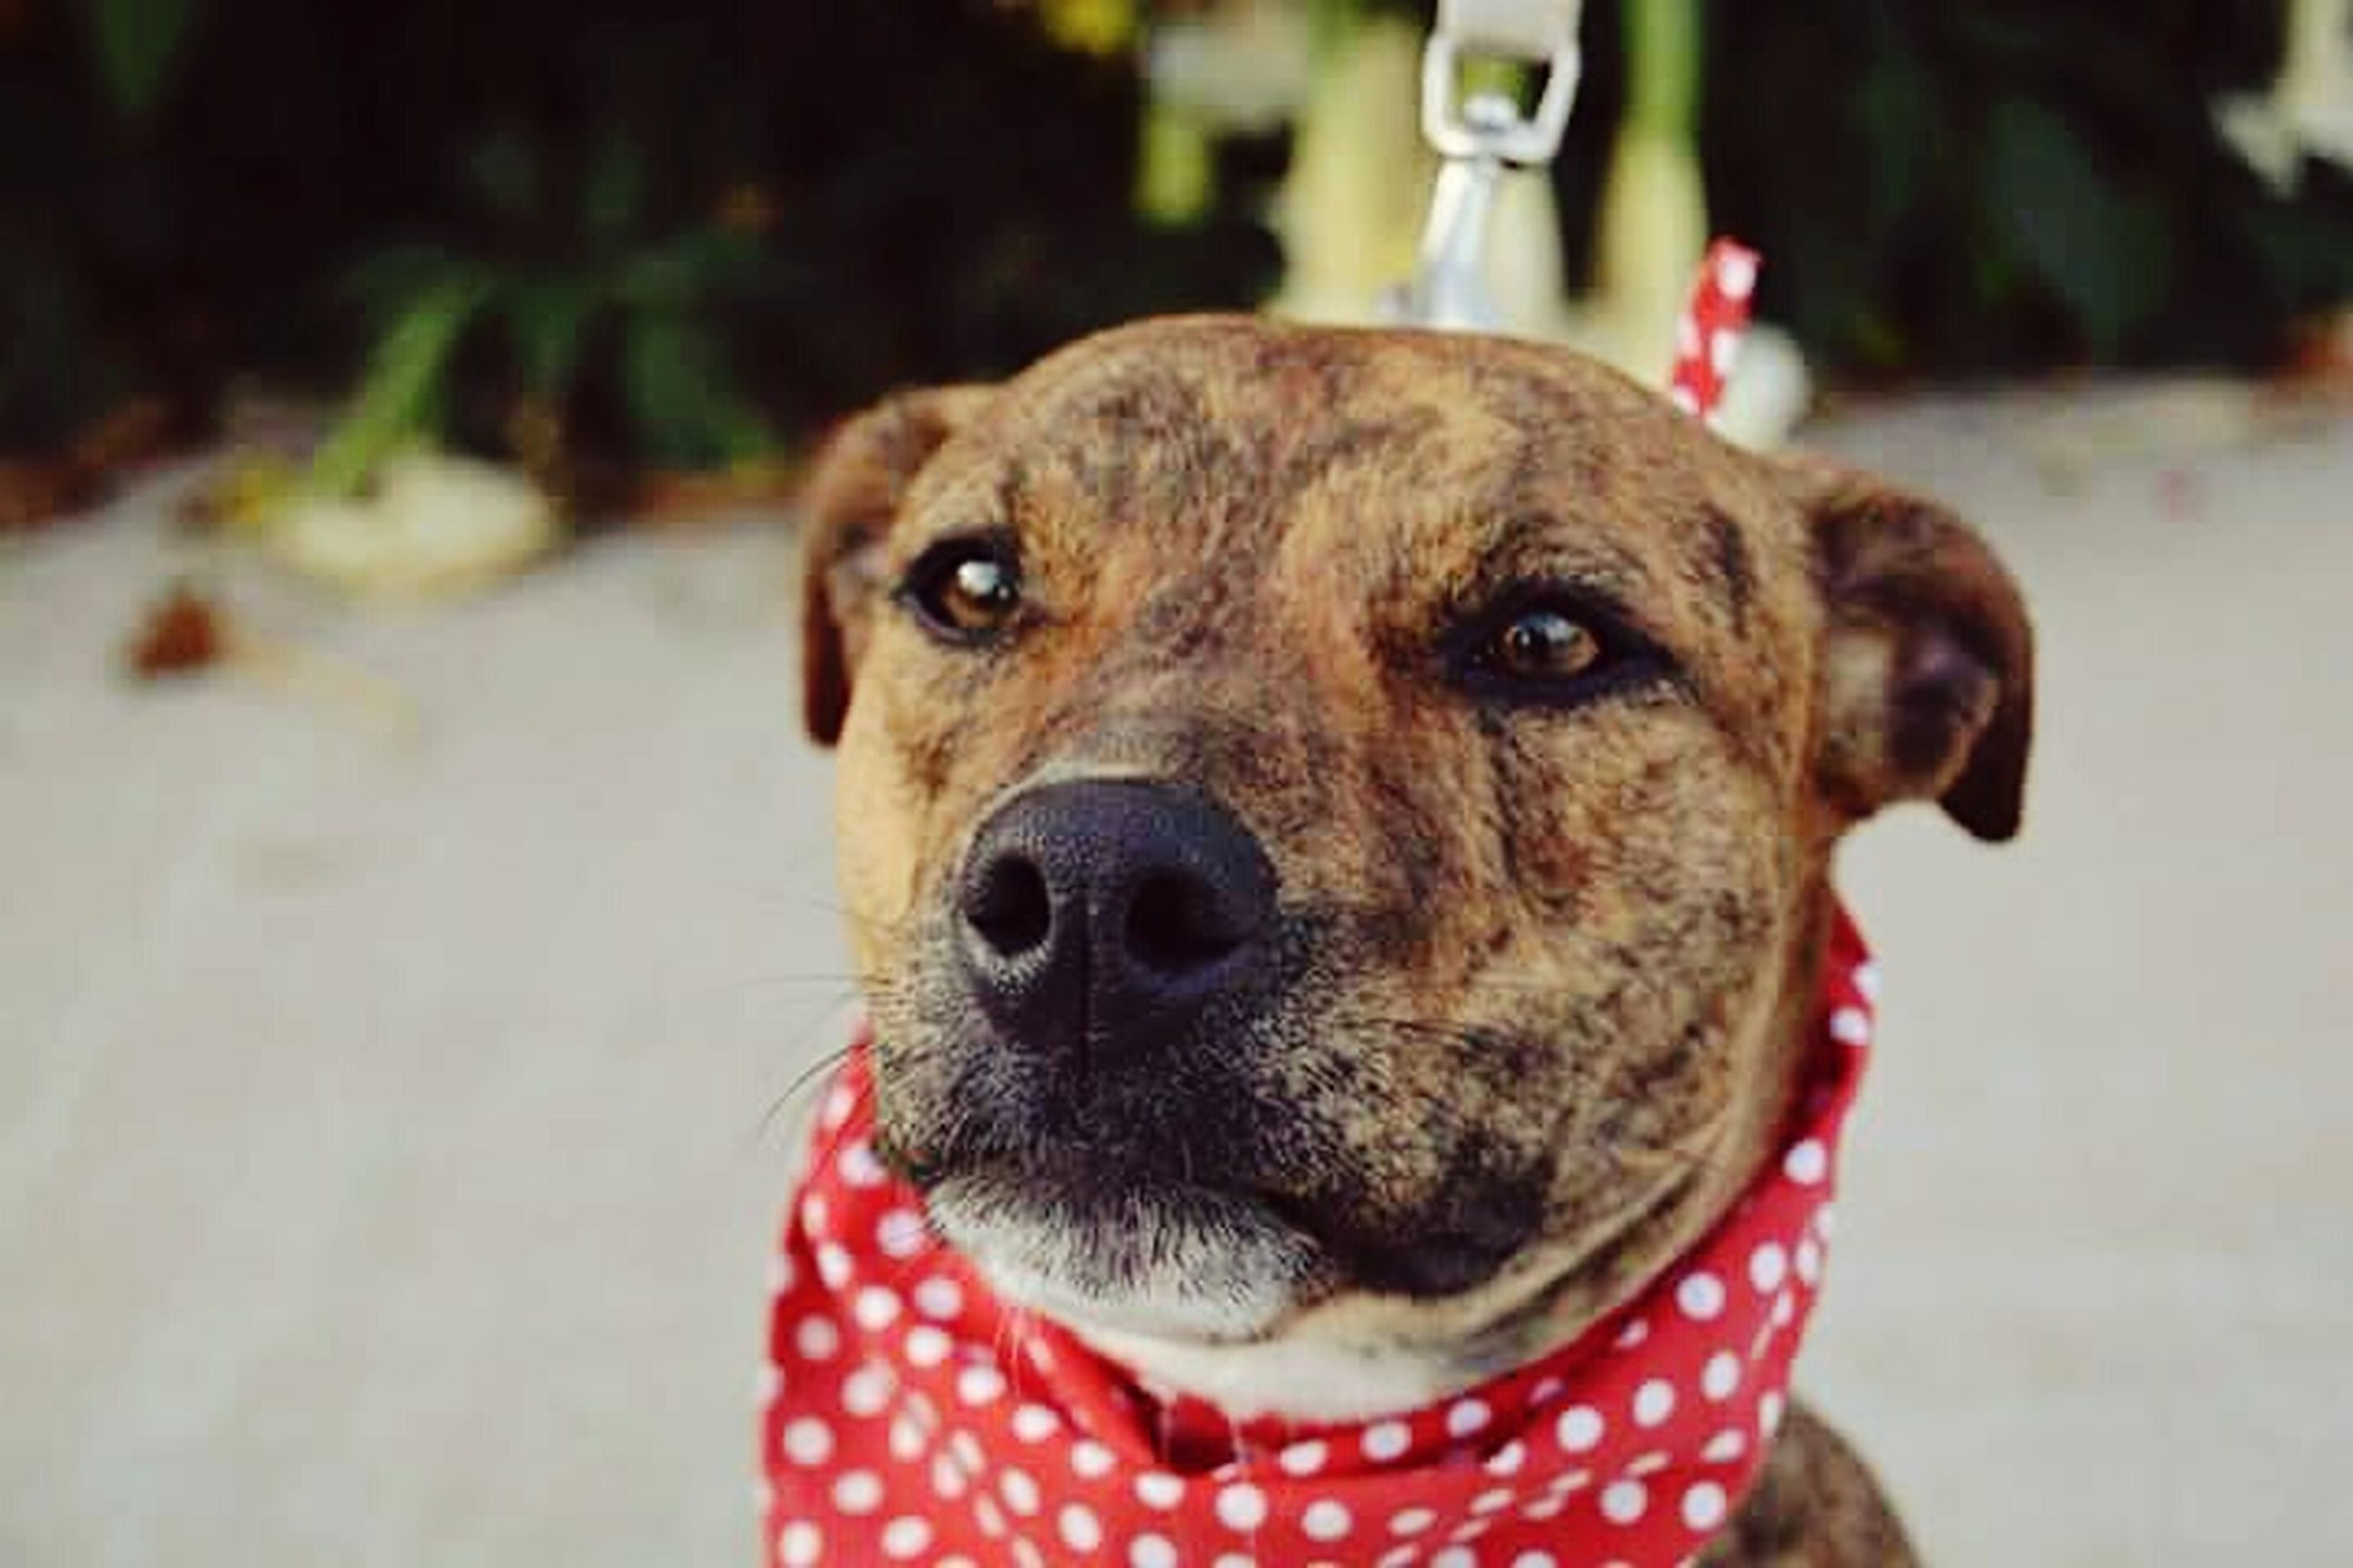 dog, pets, one animal, animal themes, domestic animals, mammal, close-up, animal head, focus on foreground, portrait, looking at camera, snout, animal body part, front view, no people, pet collar, day, outdoors, animal tongue